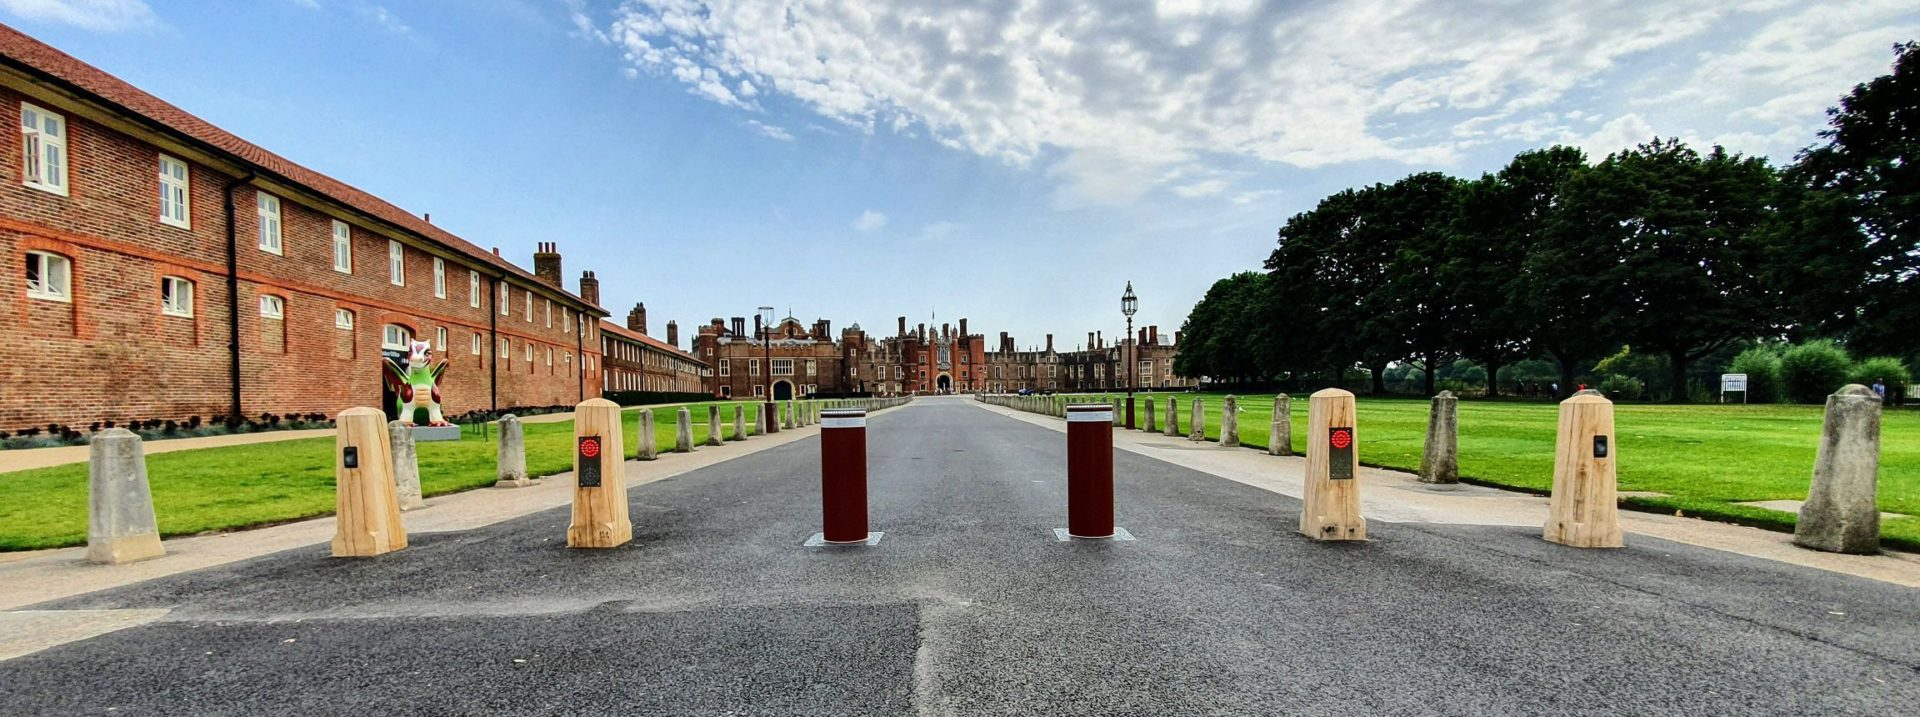 Automatic Bollards at Hampton Court Palace